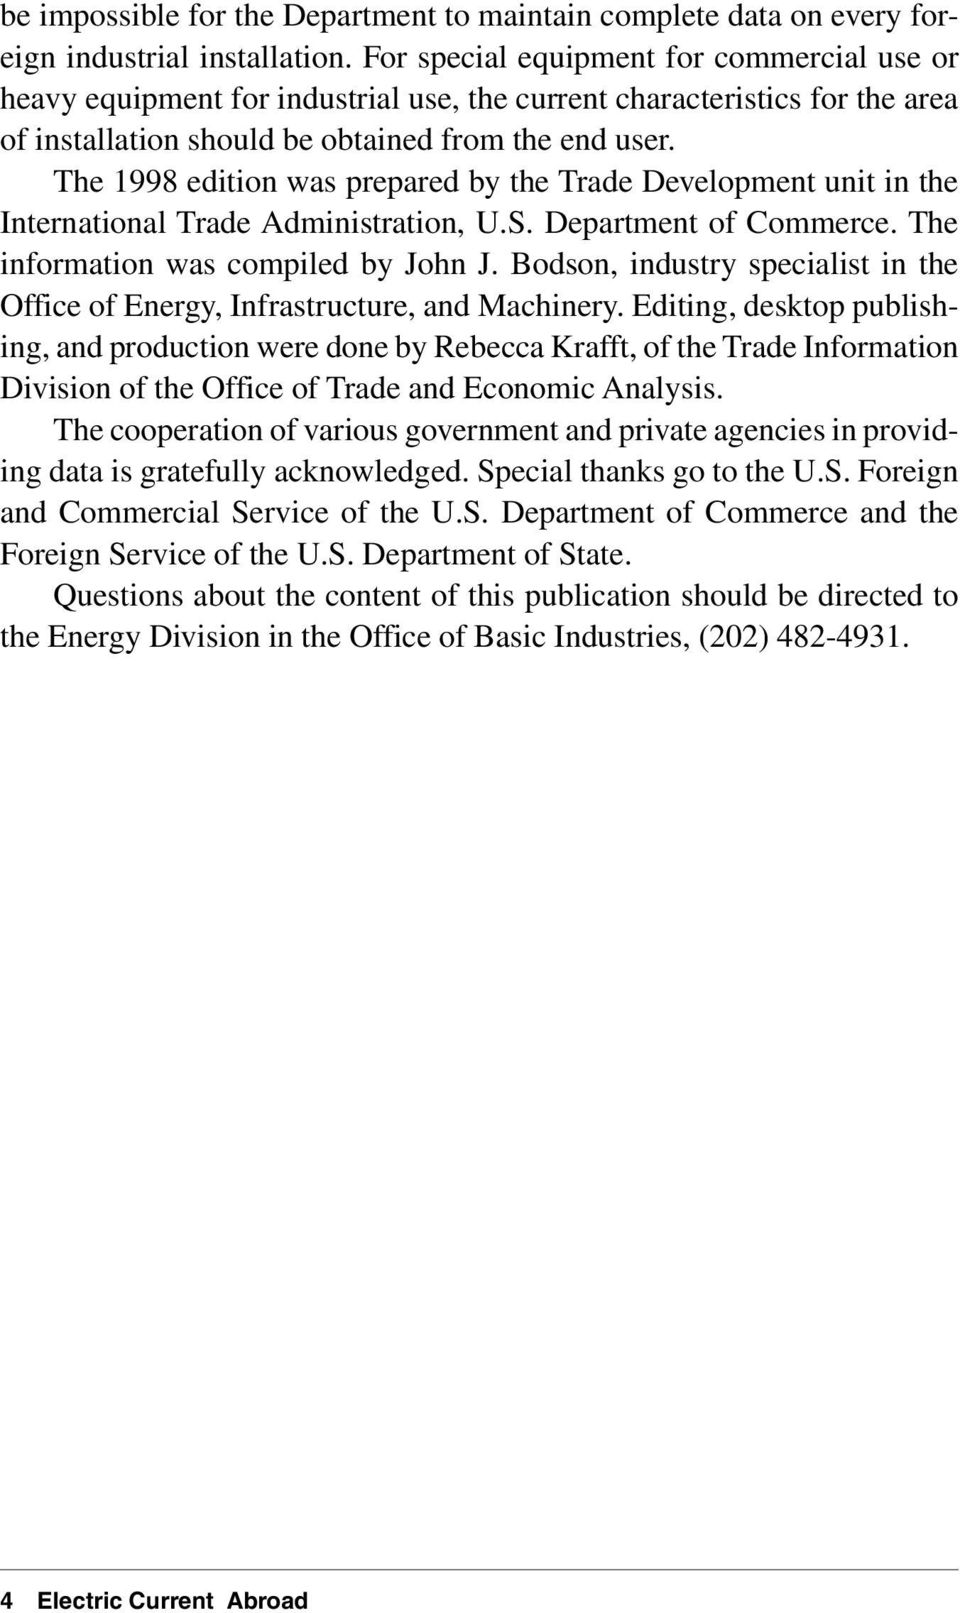 The 1998 edition was prepared by the Trade Development unit in the International Trade Administration, U.S. Department of Commerce. The information was compiled by John J.